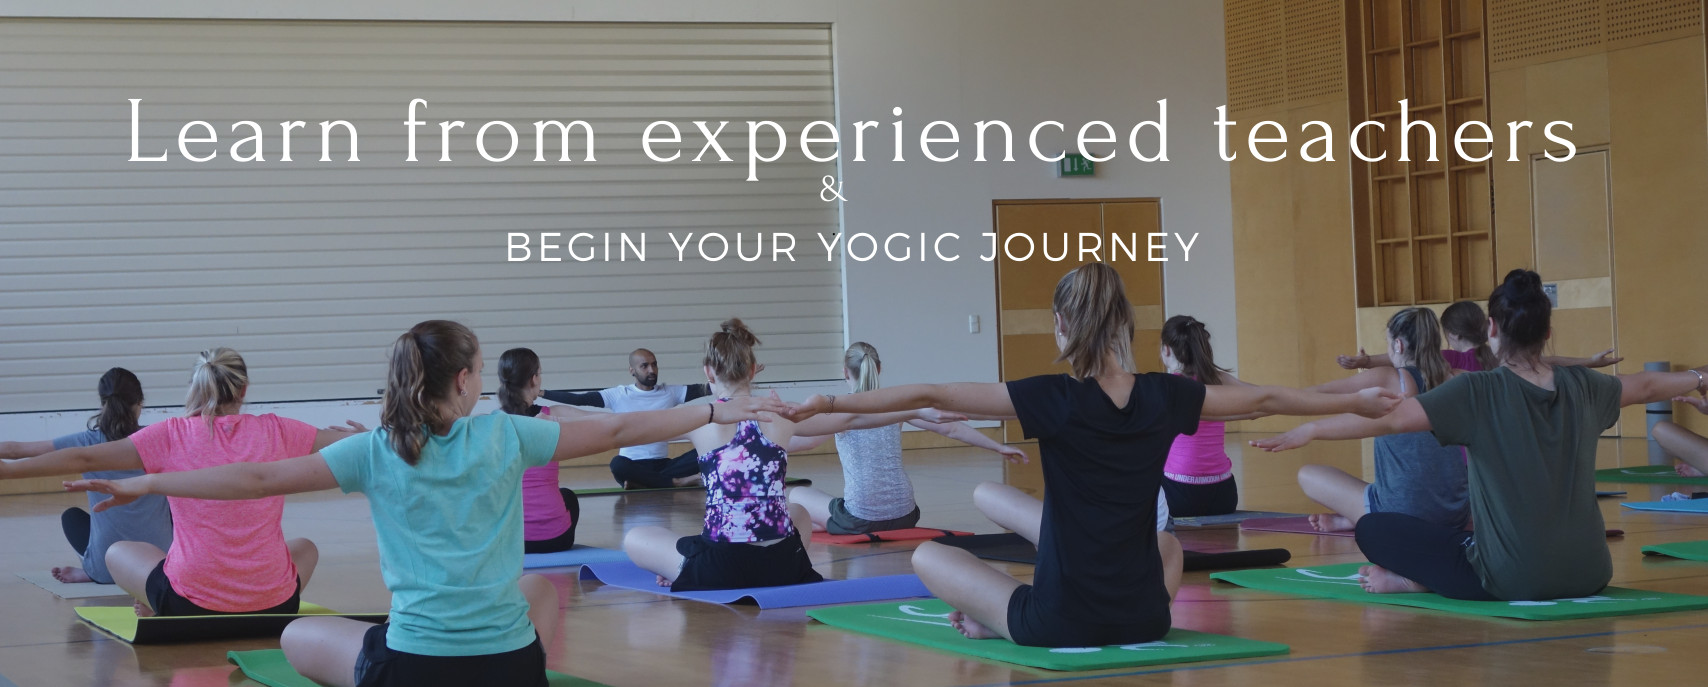 Yog Temple, Yoga Teacher Training in Austria, Yoga in Austria, Classical Hatha Yoga, Shamanism, YTTC200, Shamanism Course in Europe